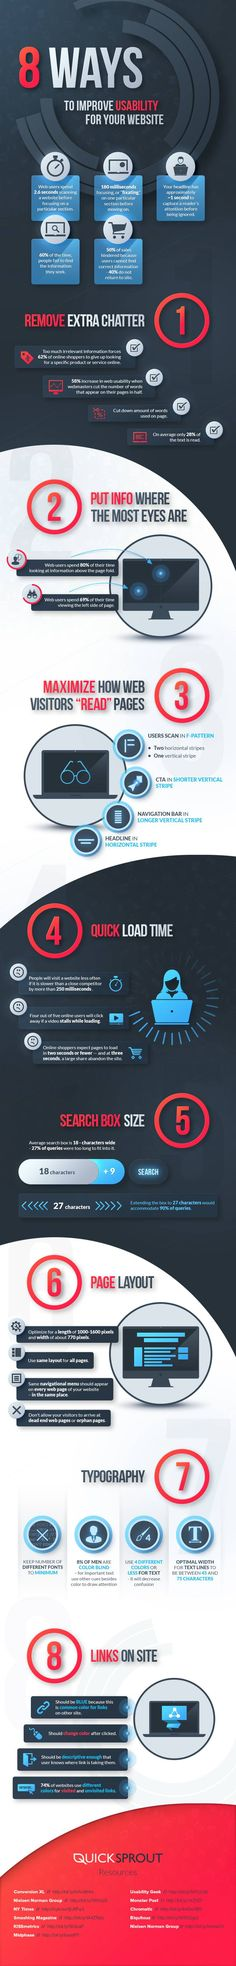 8 Ways to Improve the Usability of Your Website #infographic #Website #Marketing #Business